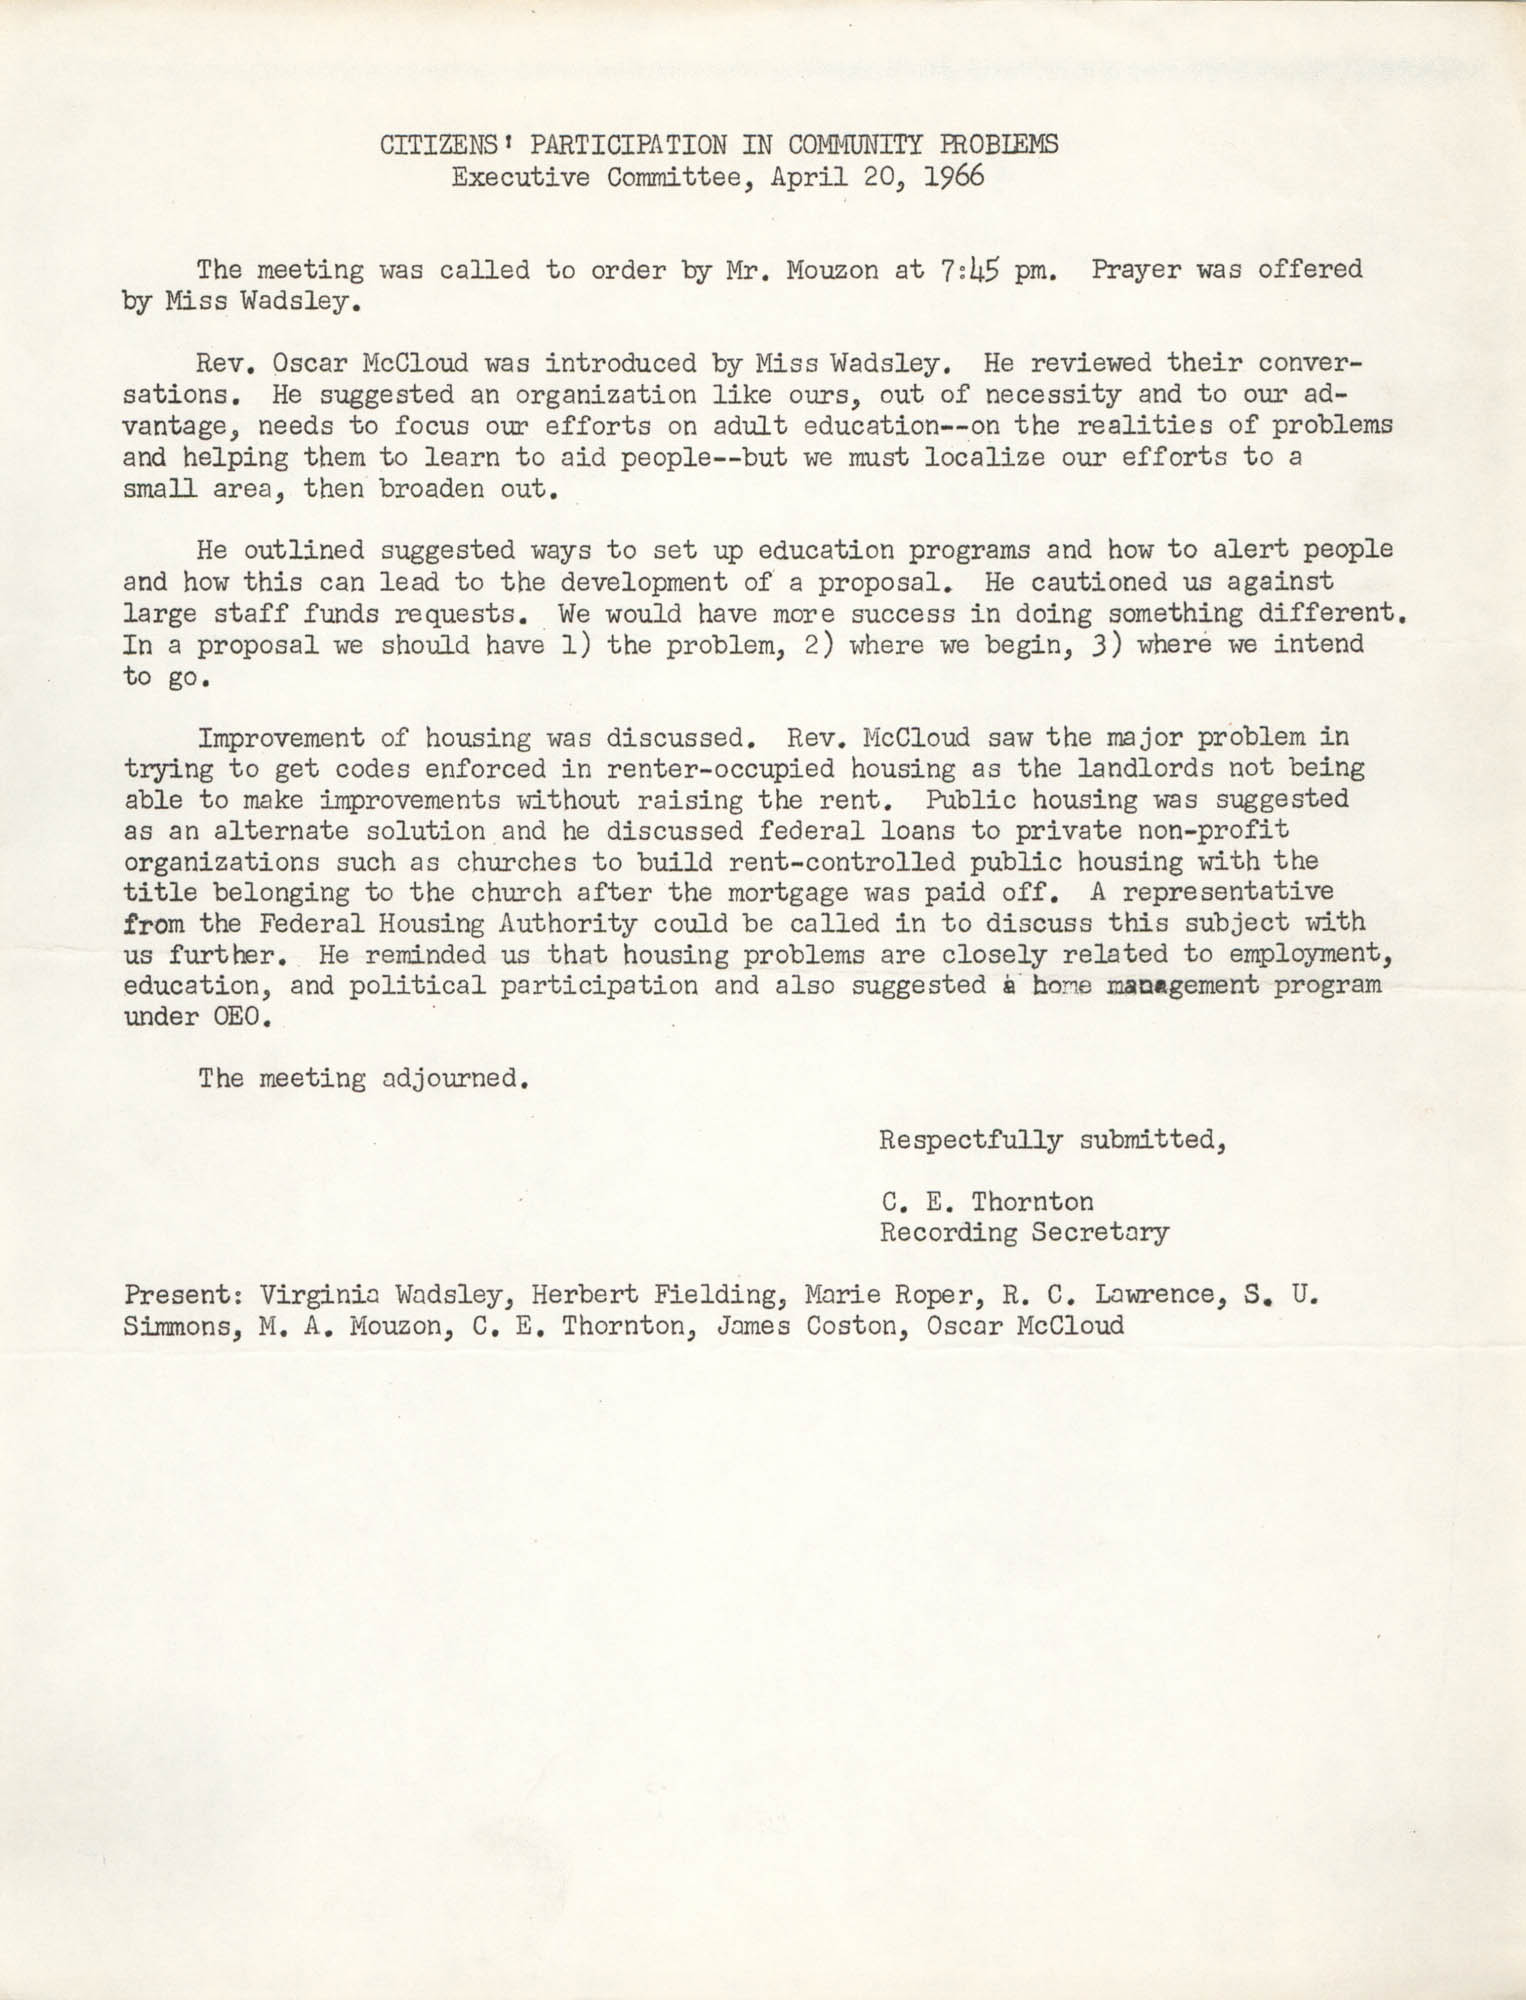 Minutes to the Citizens' Participation in Community Problems, April 20, 1966